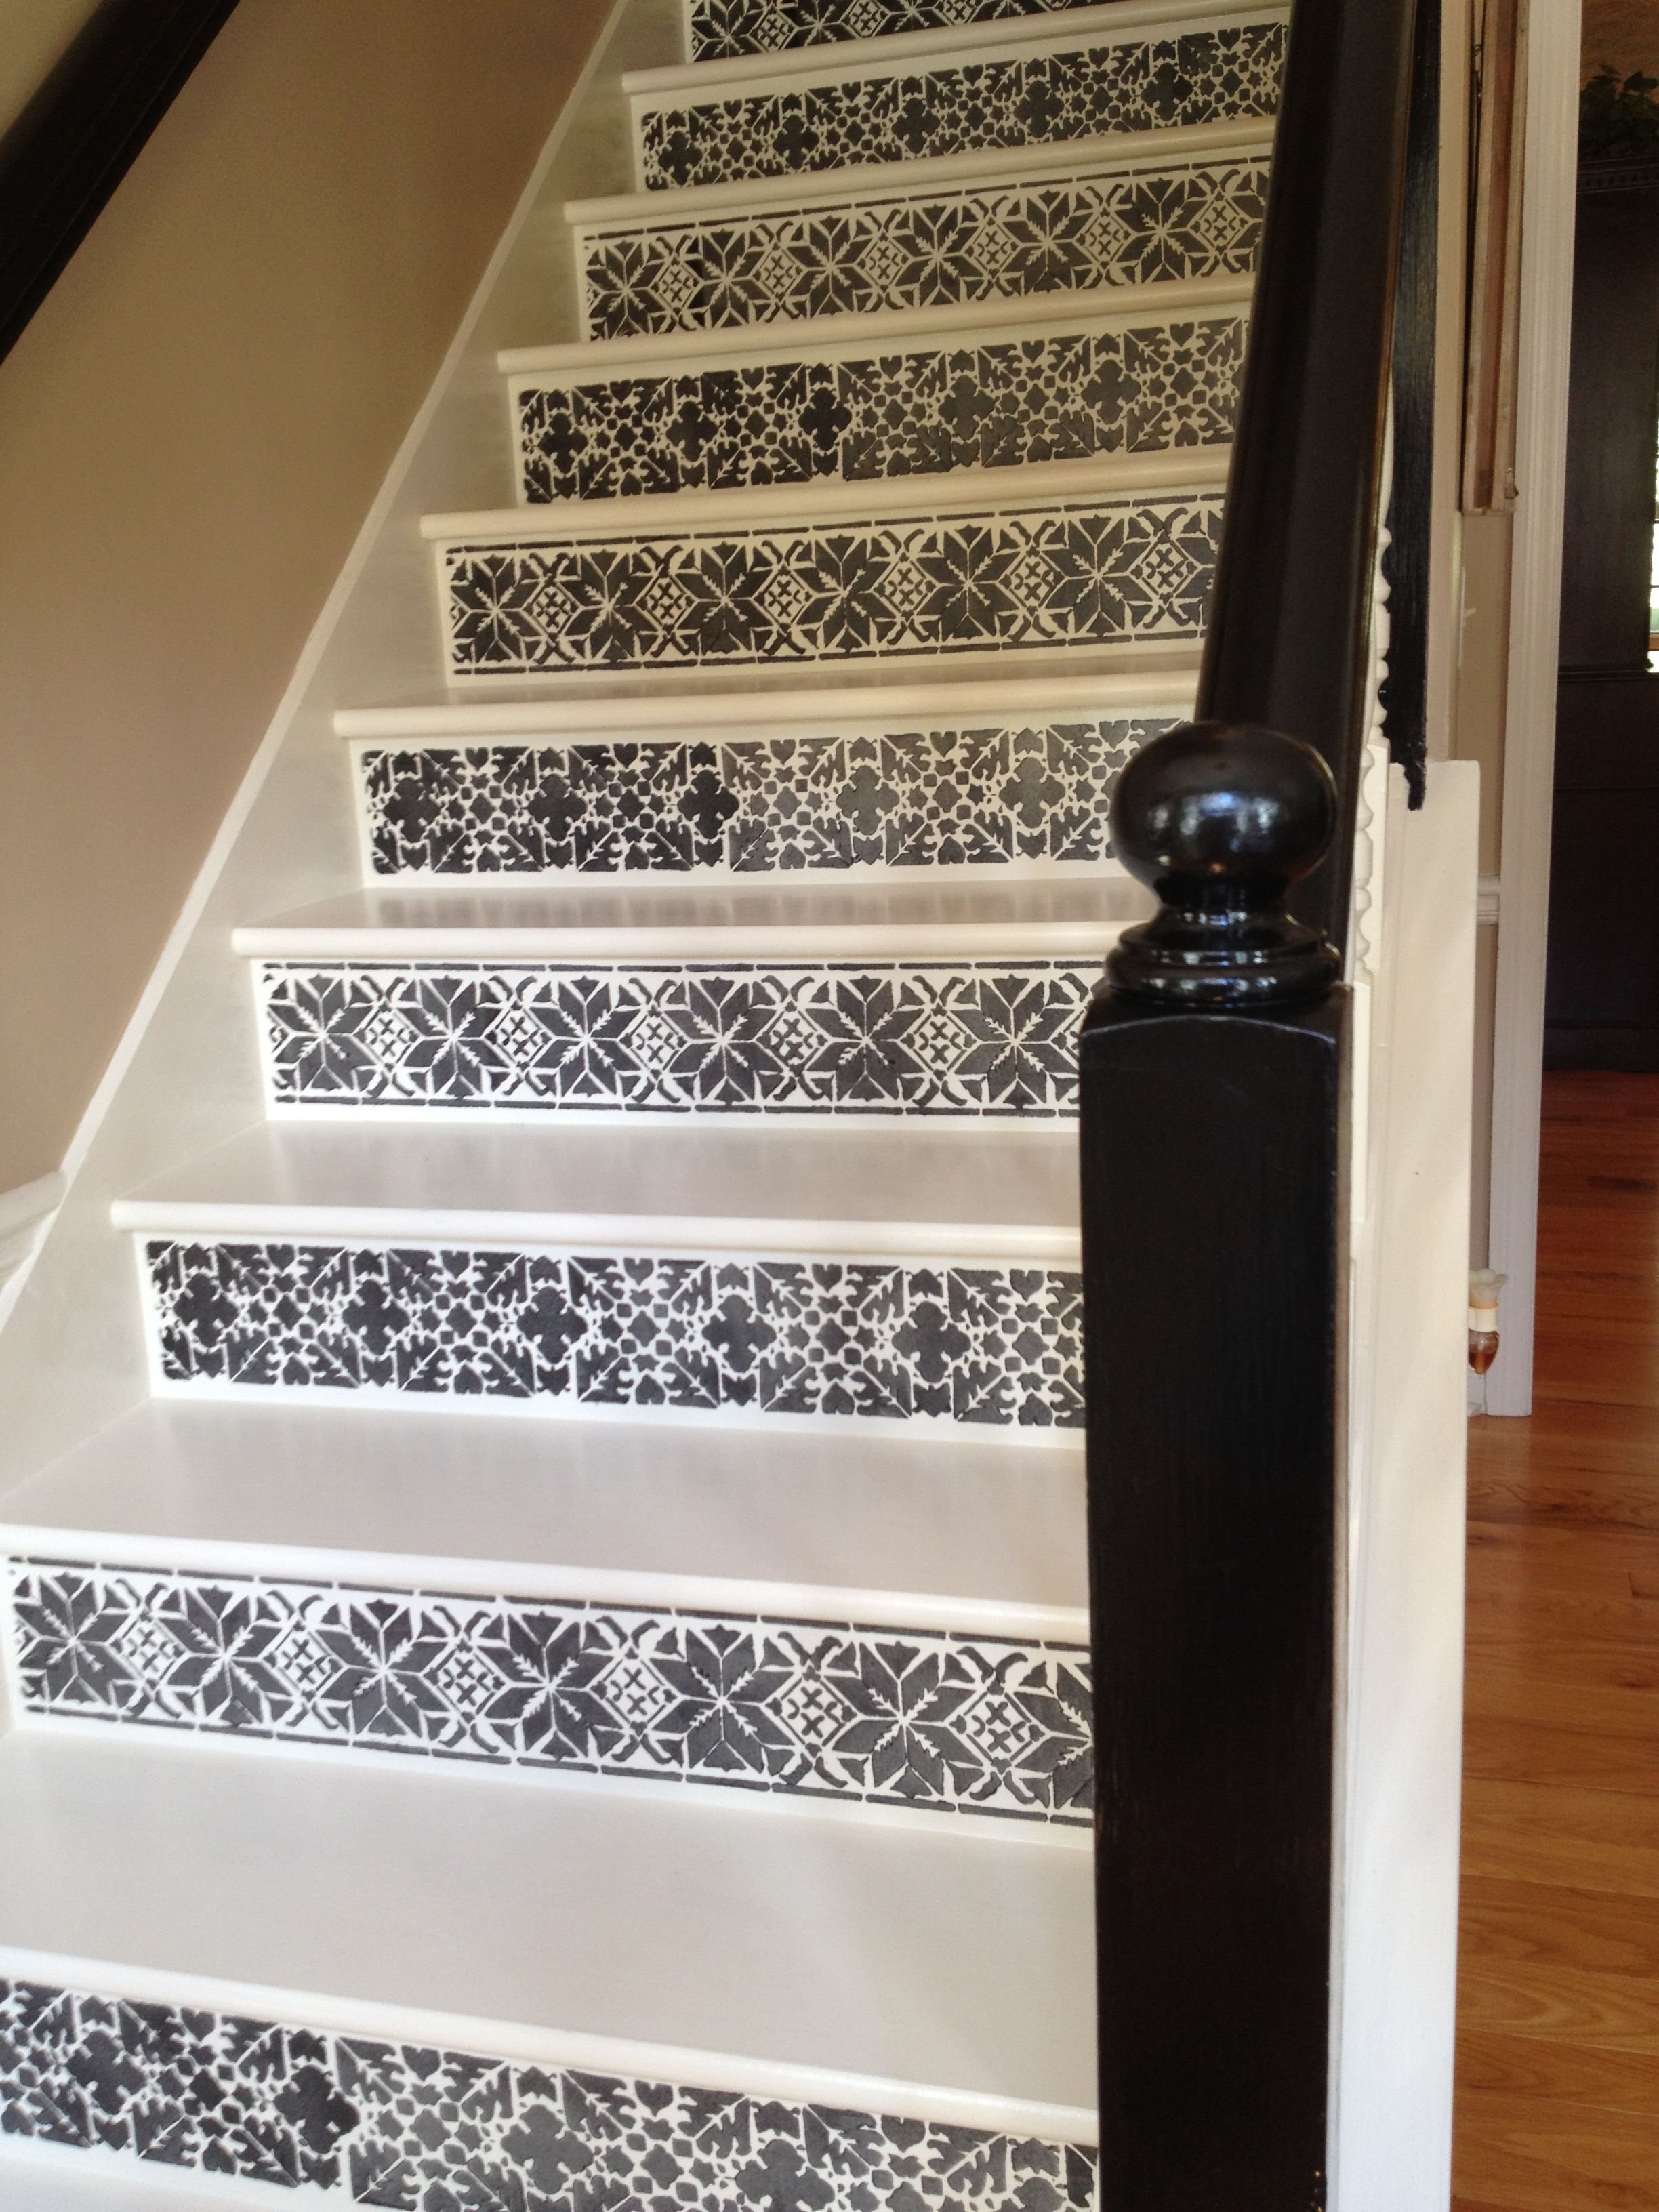 Alternate Stencil On Stair Risers To Achieve A Moroccan / Mexican Tile Look!